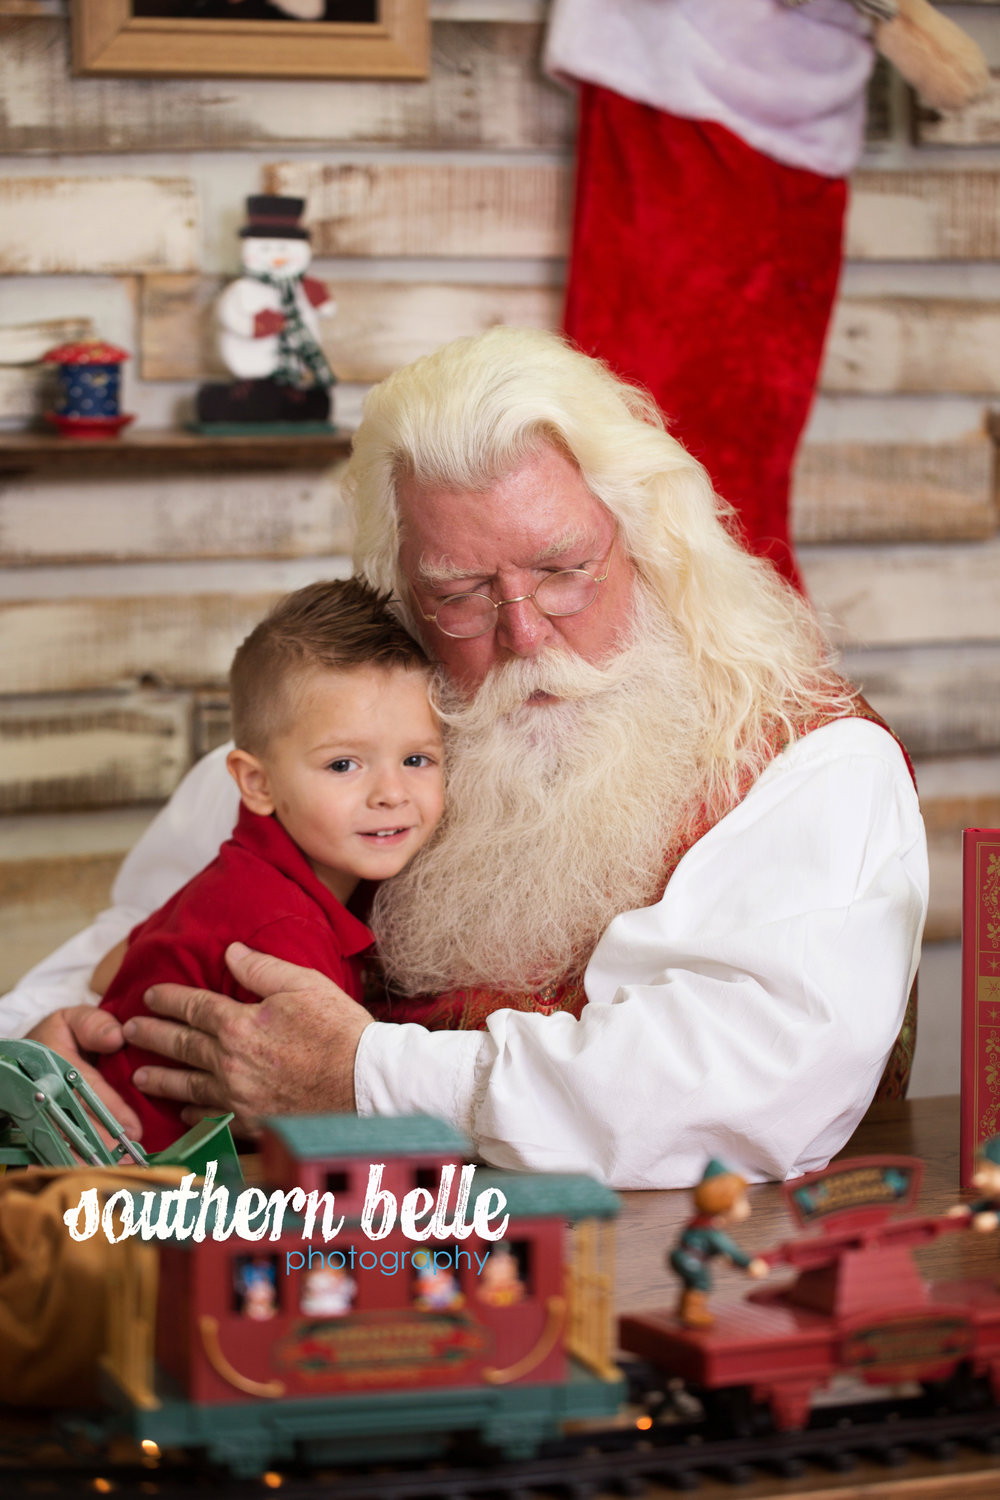 Southern Belle Photography hosted Santa on Nov 4-5 in our completely custom workshop.